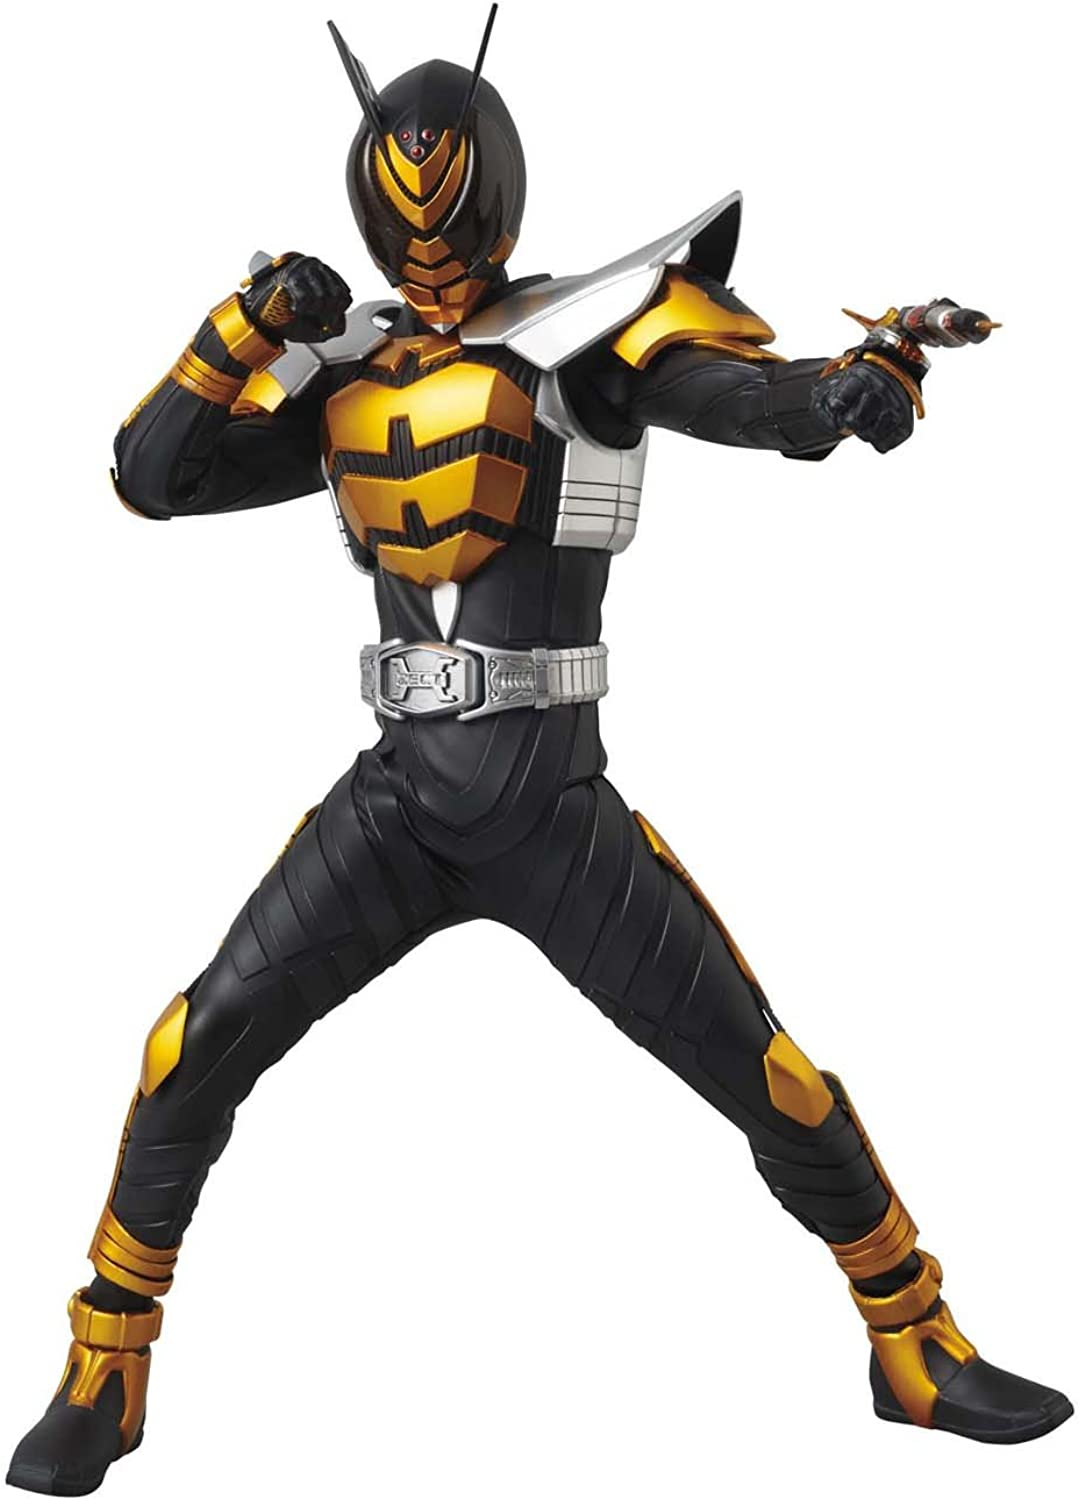 Real Action Heroes No.556 RAH DX - Kamen Rider TheBee (Rider Form)